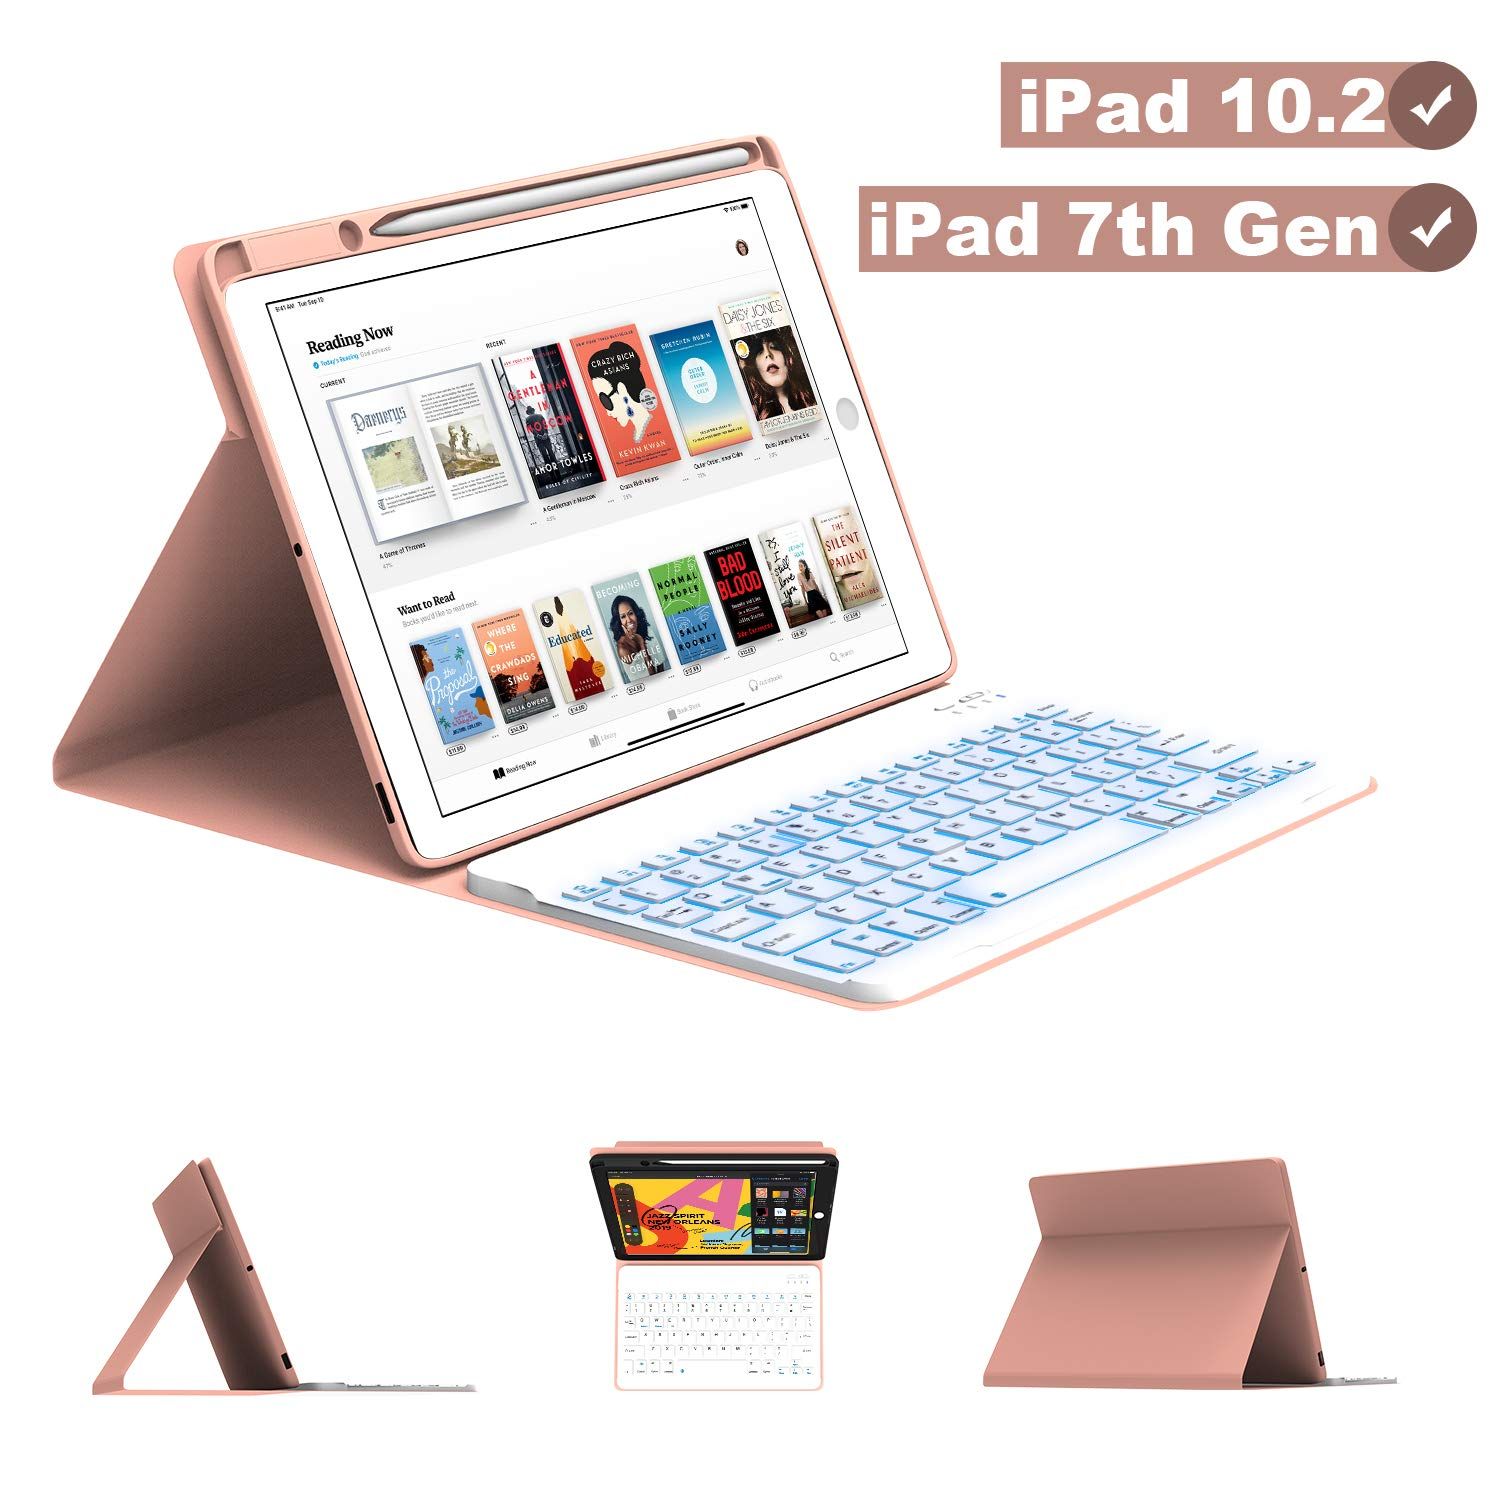 Maxfree iPad Keyboard Case for iPad 7th Generation 10.2 2019, 7 Colors Backlit, Magnetically Detachable Auto Sleep Keyboard with Pencil Holder, Full Folio Cover for iPad 10.2 Inch, Rose Golden